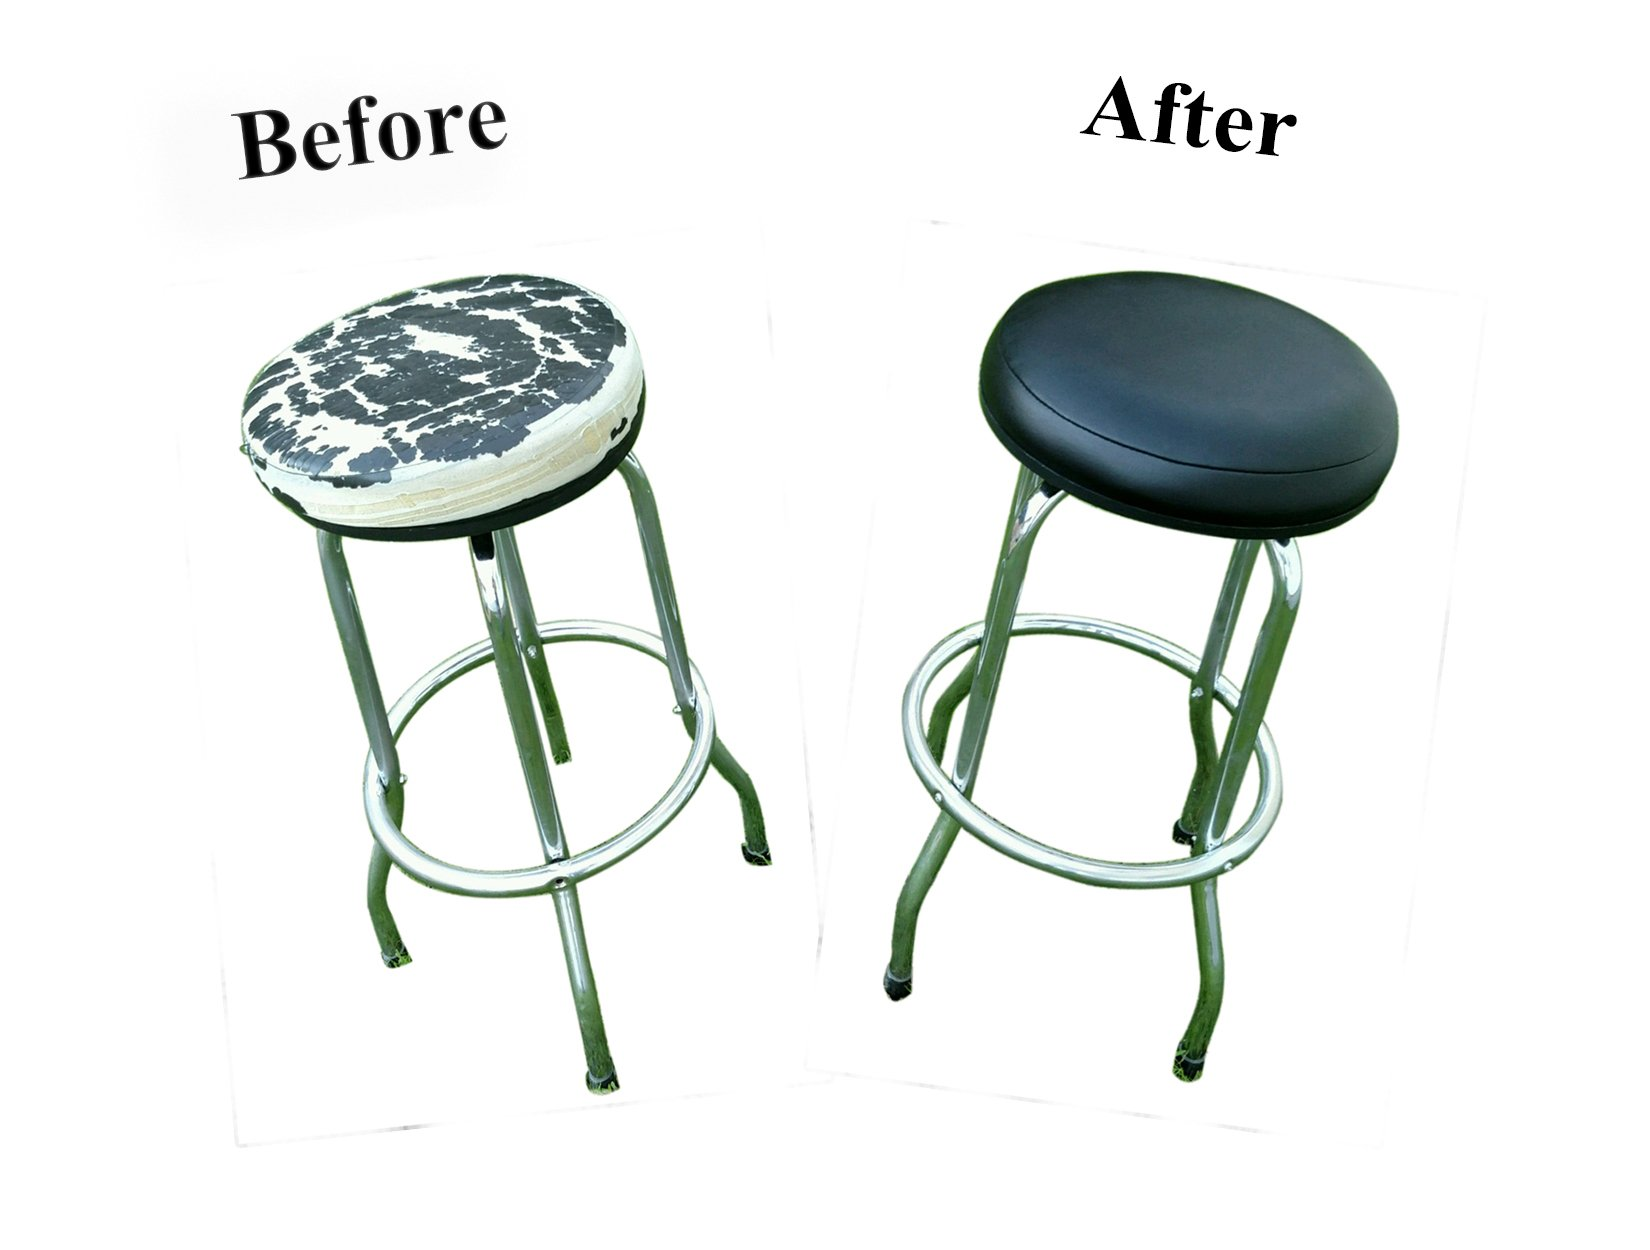 Bar Stool Covers 4 Less BAR STOOL COVER For Kitchen Pub Exam Office - EASY SLIP ON - Vinyl Replacement Seat Top With Extra Thin Padding & Elastic Band (15 inch Diameter, Black)